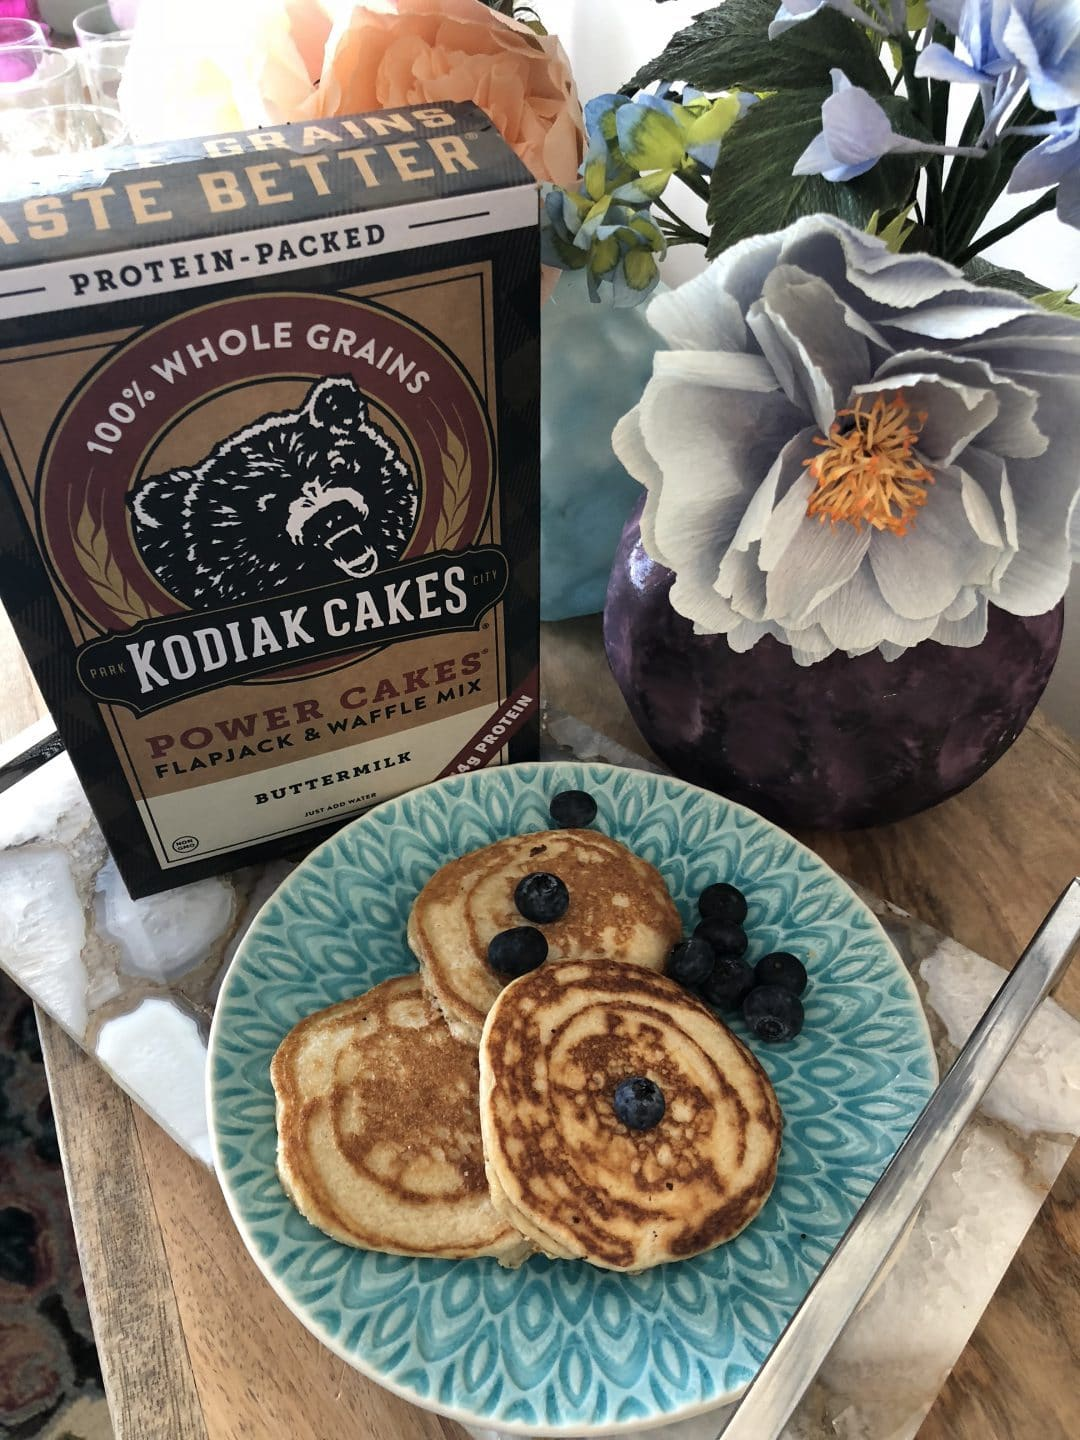 A stack of three blueberry pancakes sits on a teal plate with a box of Kodiak power cakes mix and a vase of flowers on the table.